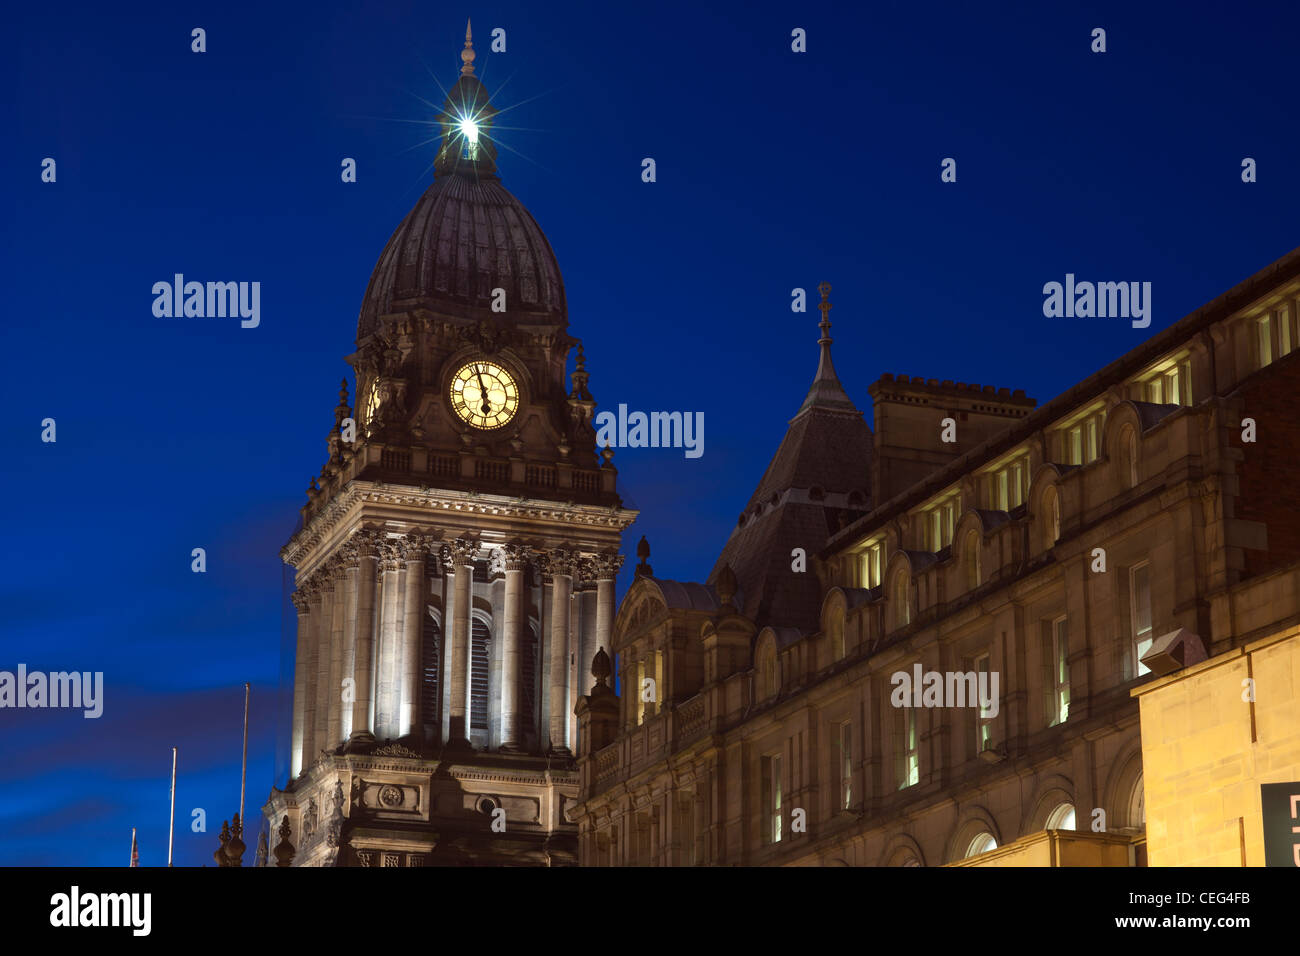 leeds town hall at twilight built in 1858 designed by cuthbert brodrick leeds yorkshire uk - Stock Image